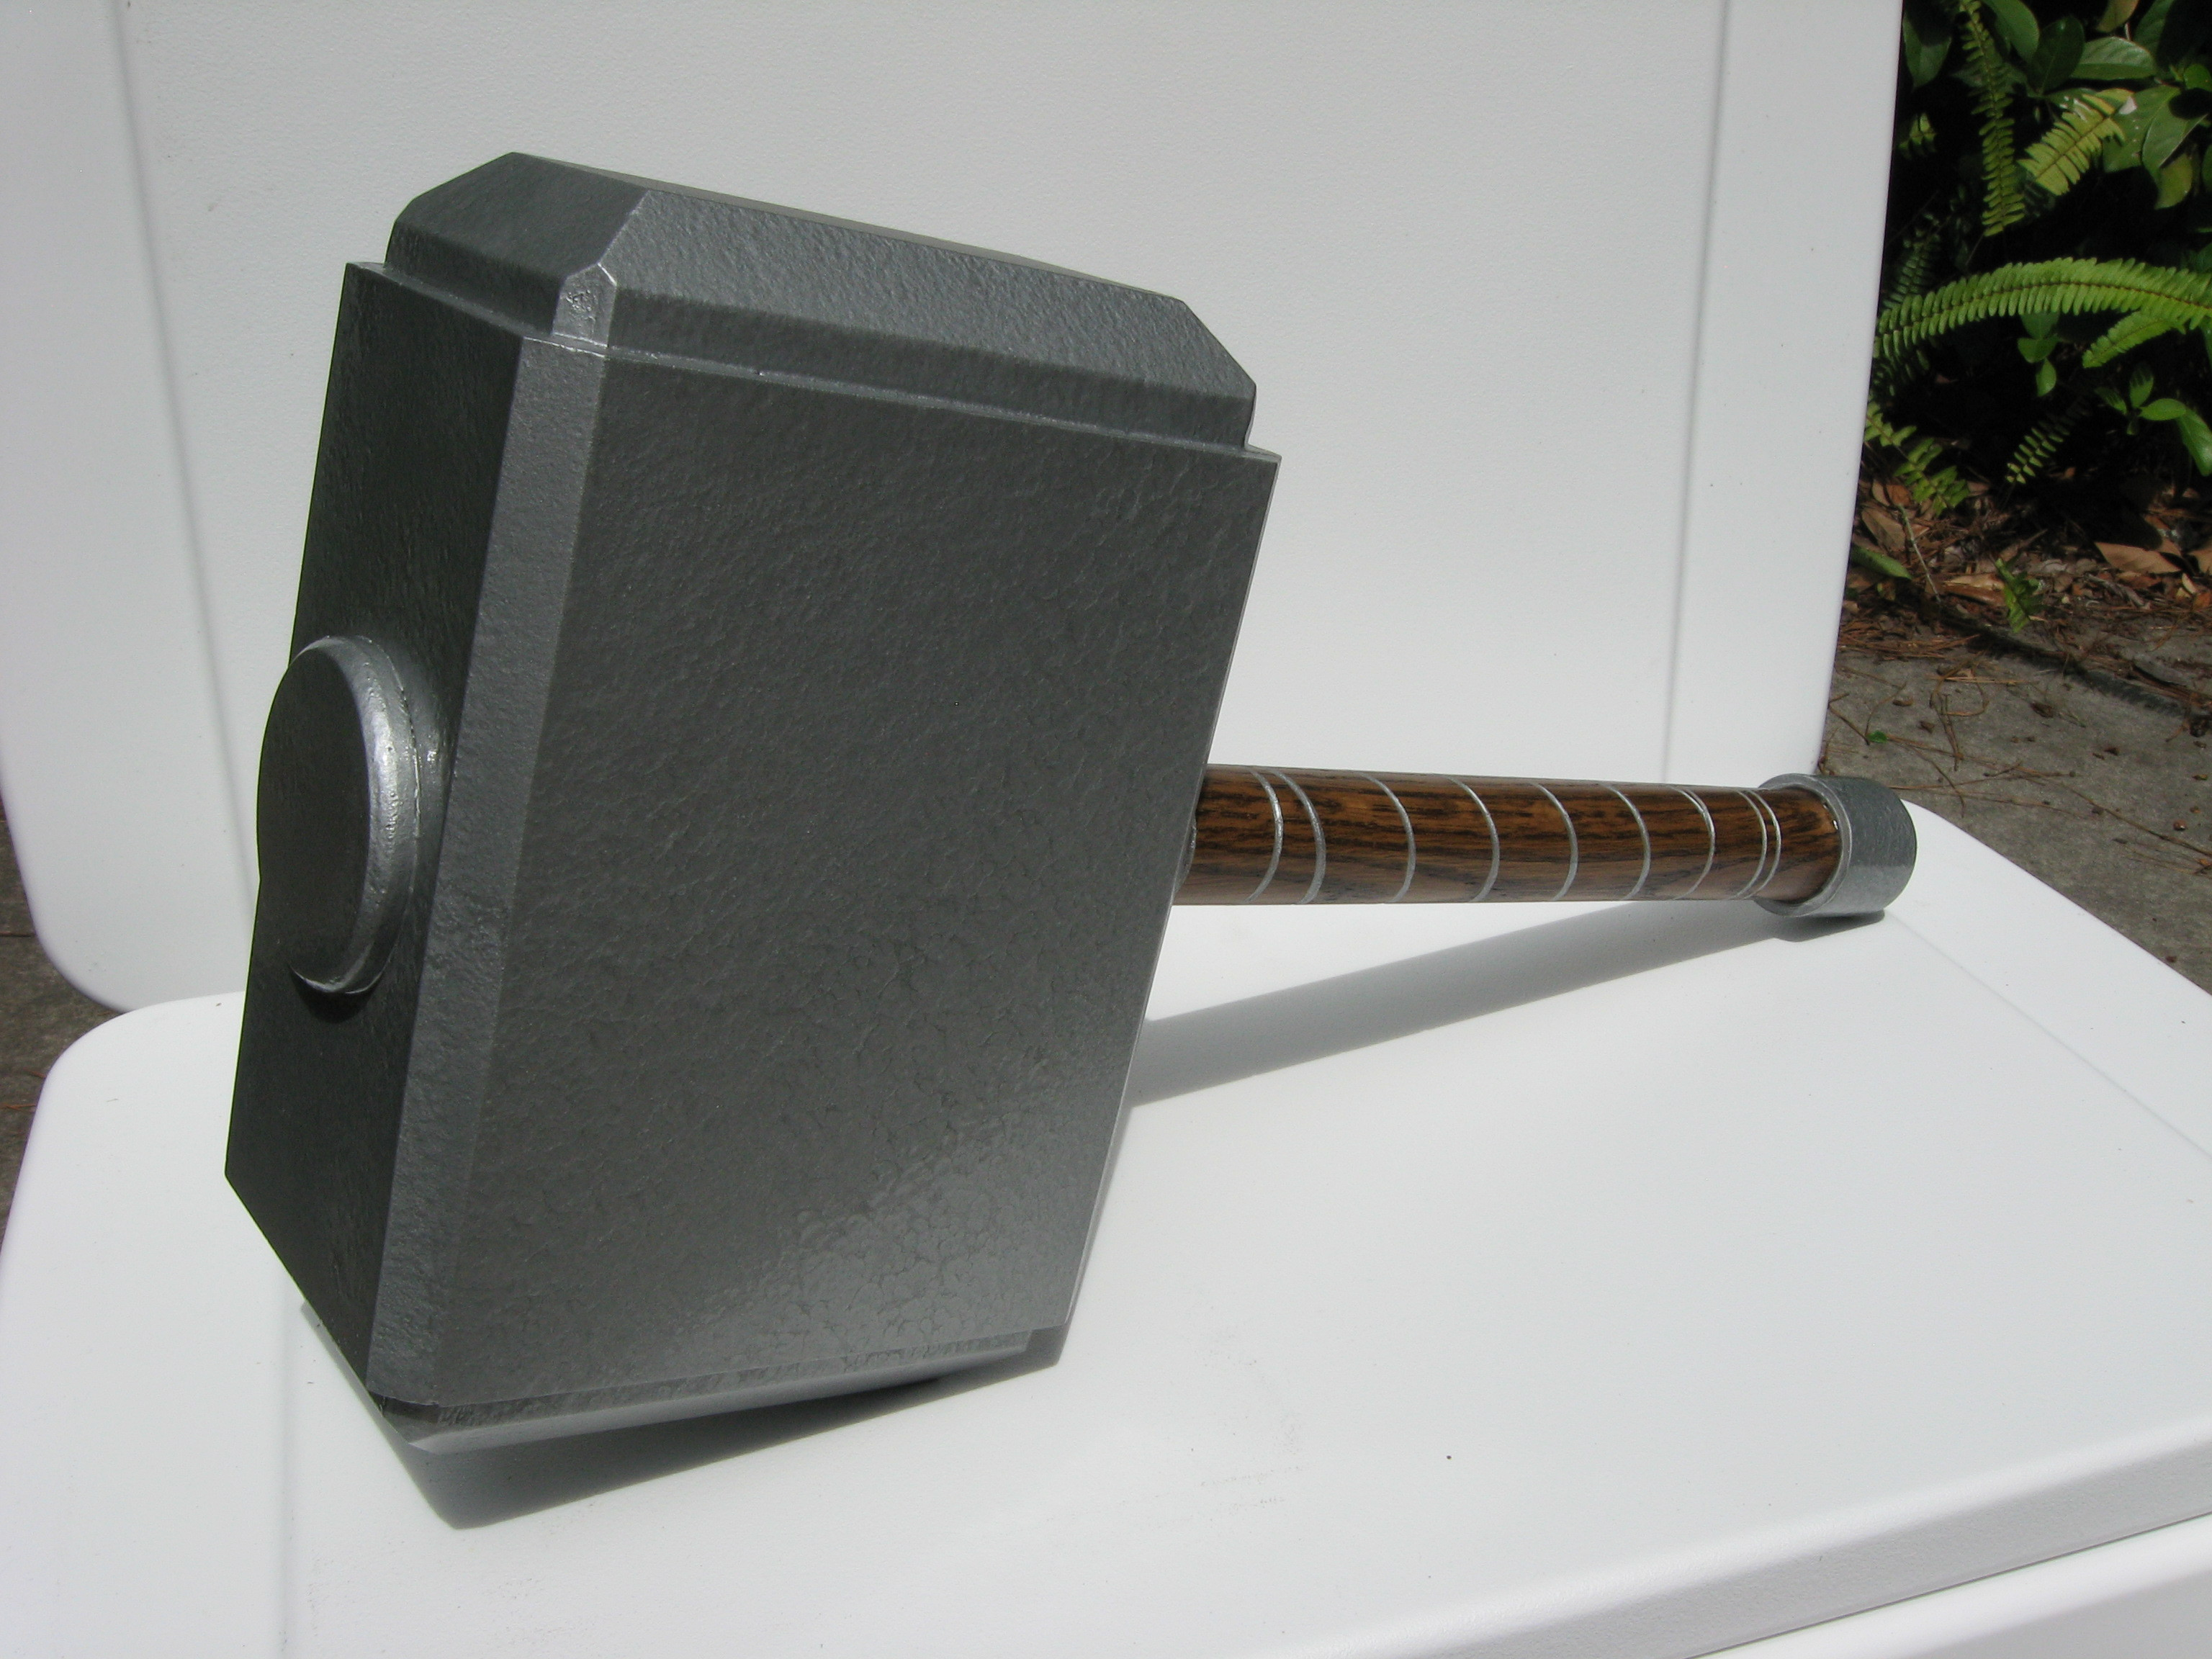 New Project: Thor's Hammer